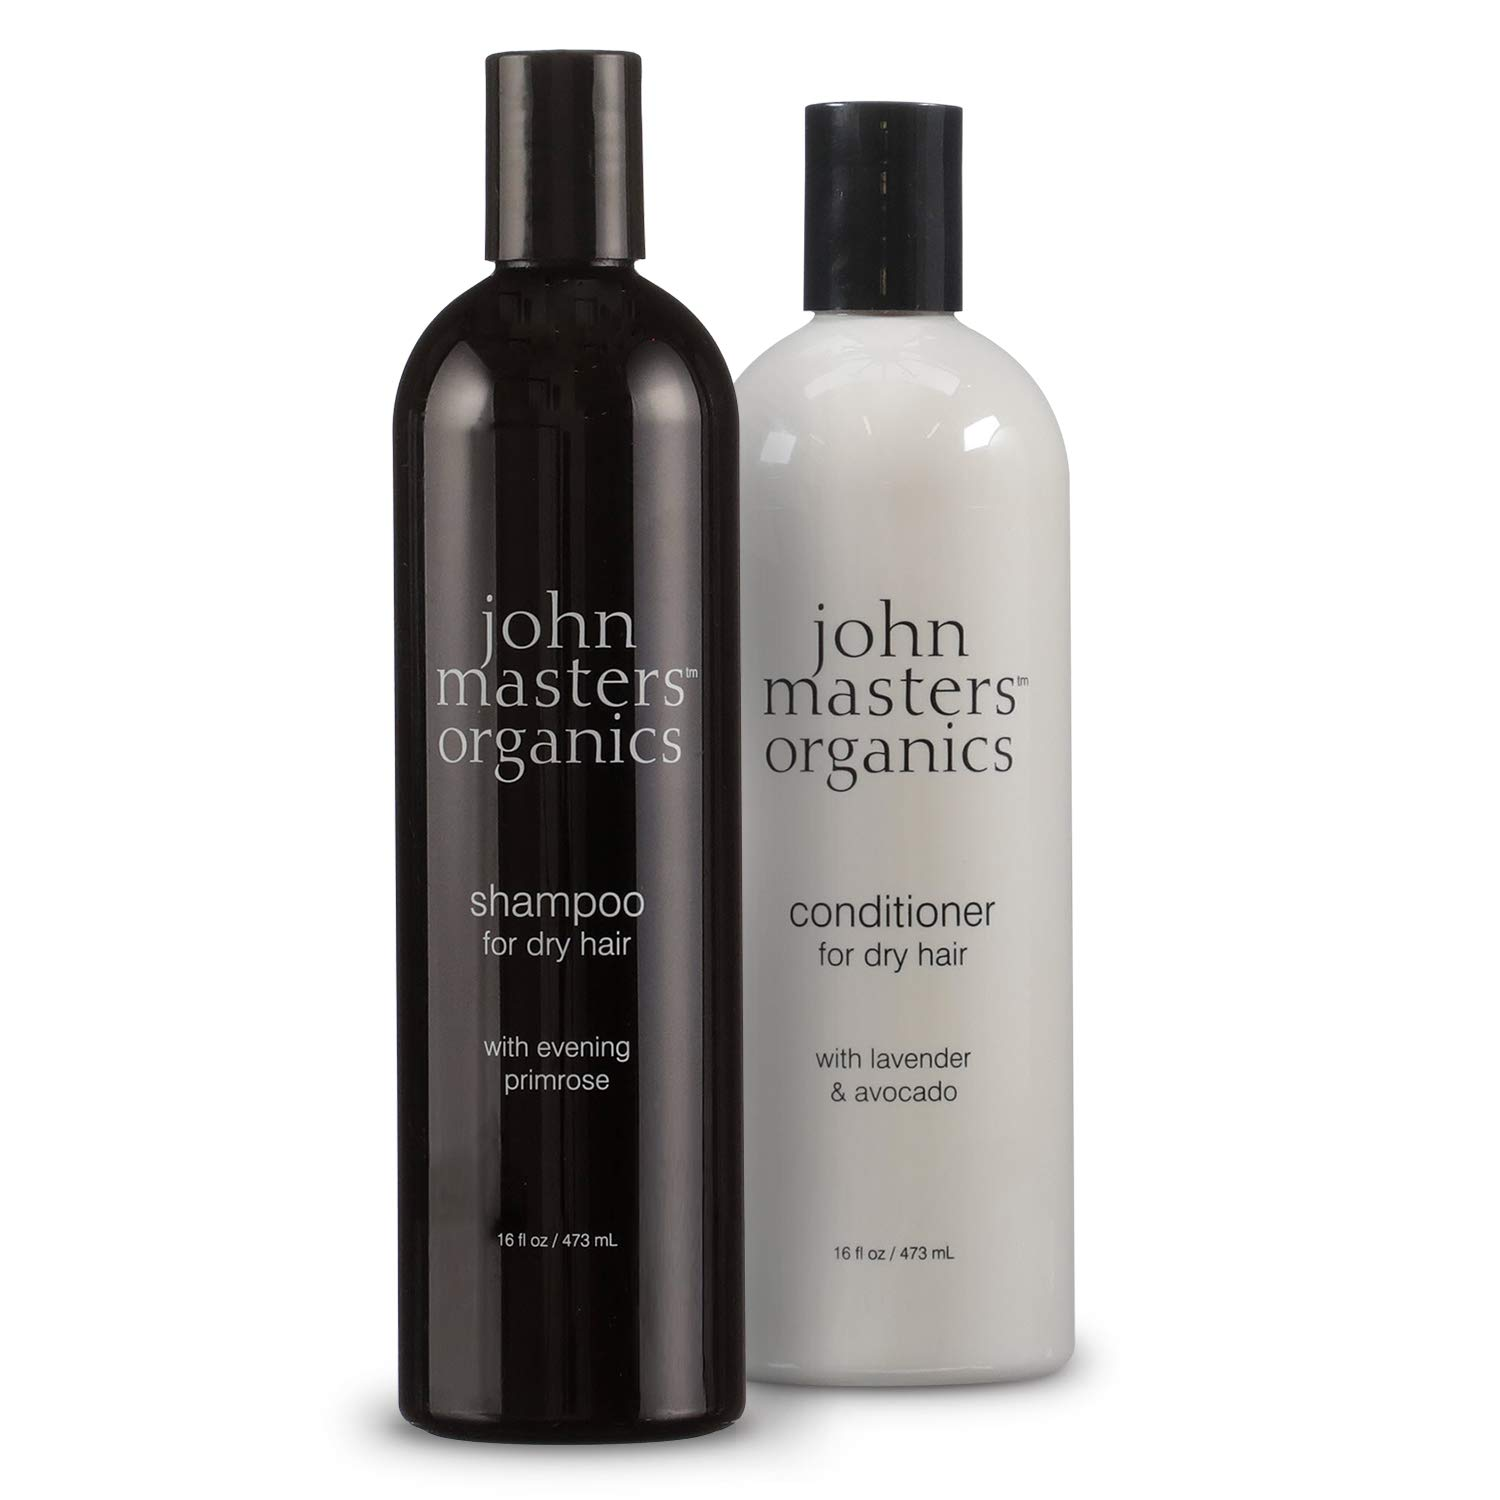 John Masters Organics - Shampoo for Dry Hair with Evening Primrose - 16 oz and Conditioner for Dry Hair with Lavender & Avocado - 16 oz (2 Pack)